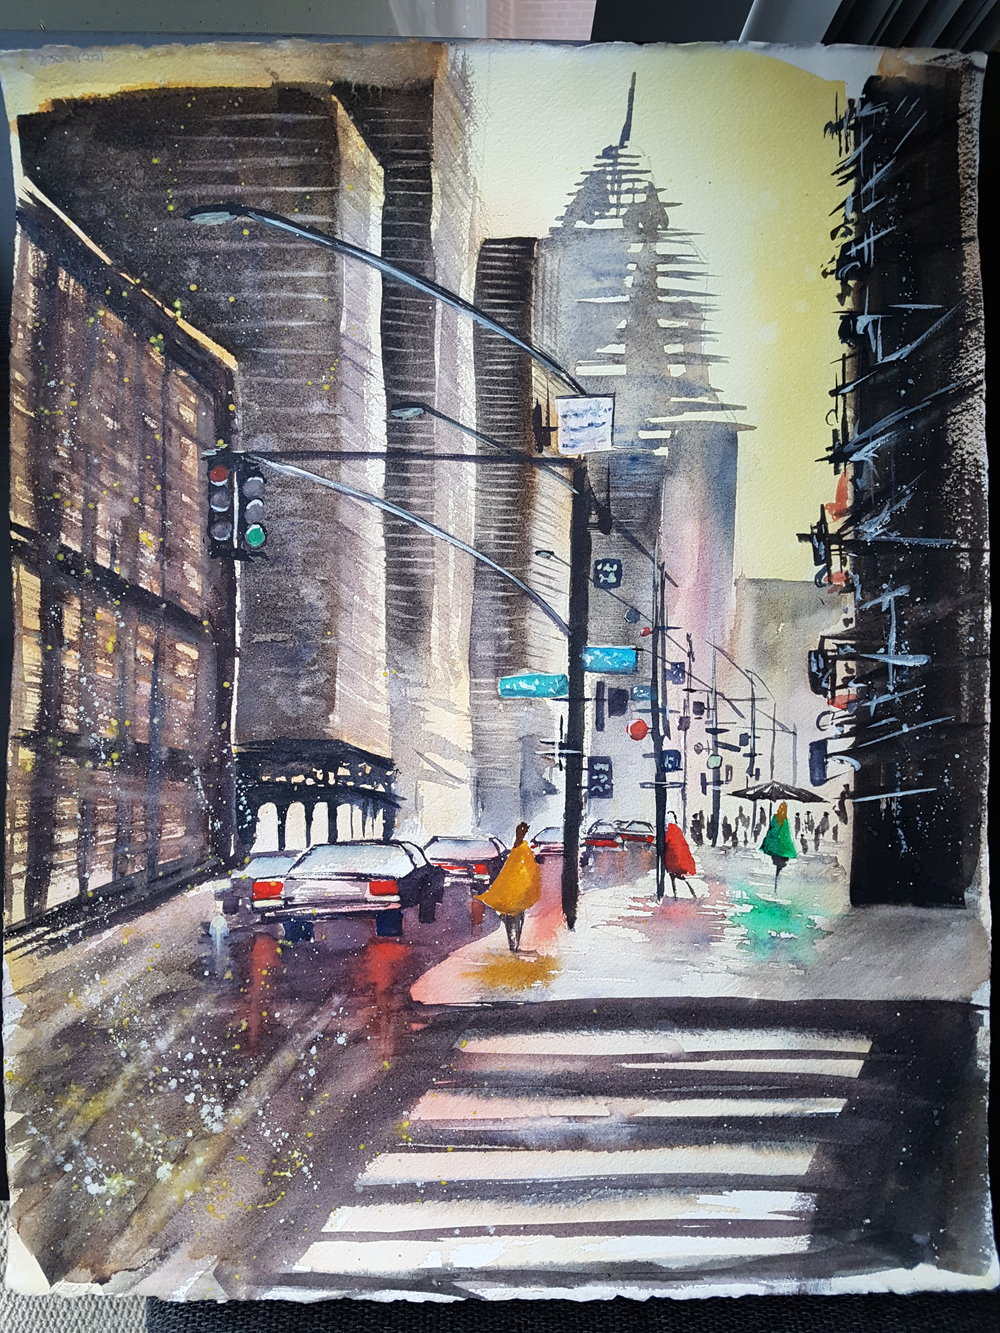 """New York, Revisited""  16x20"" [SOLD]  As I was learning to paint watercolor, I began to follow a French watercolorist named Umberto Rossini. He makes videos of step-by-step paintings, and from seeing the first video I instantly fell in love with his style. This is my interpretation of his painting ""NYC.""  You can see more from Umberto Rossini on  his YouTube channel."